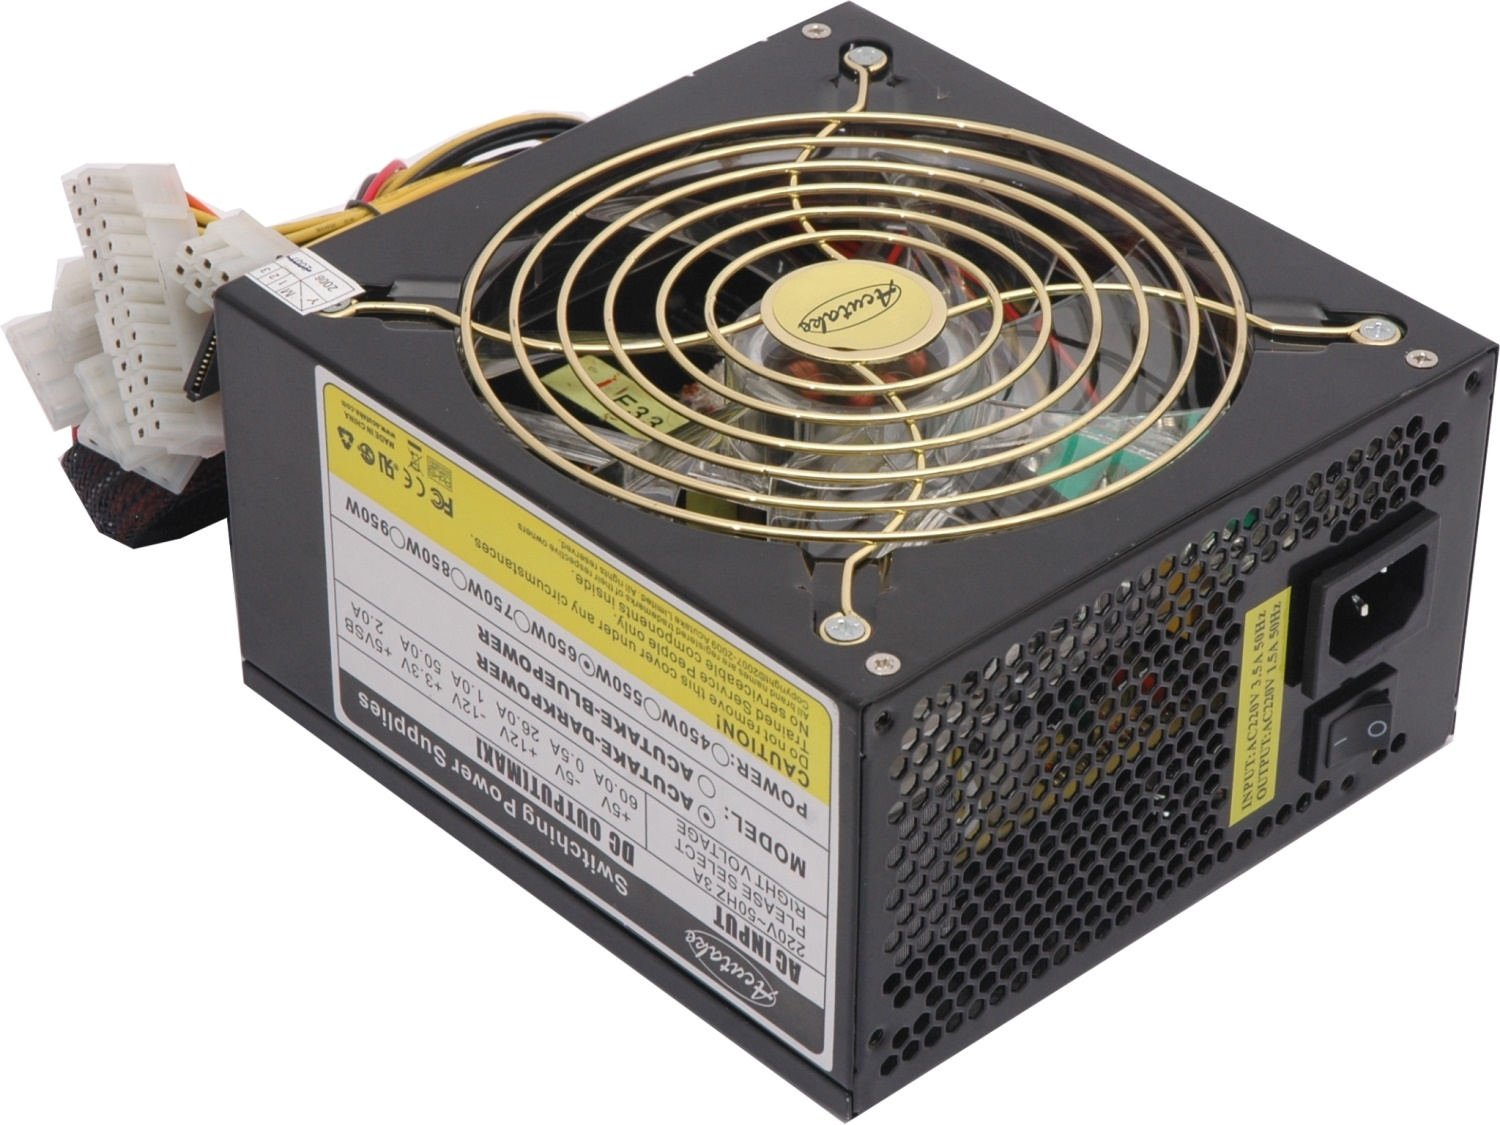 ACUTAKE ACU-DARKPOWER 650W PRO (140MM GIANT FAN)